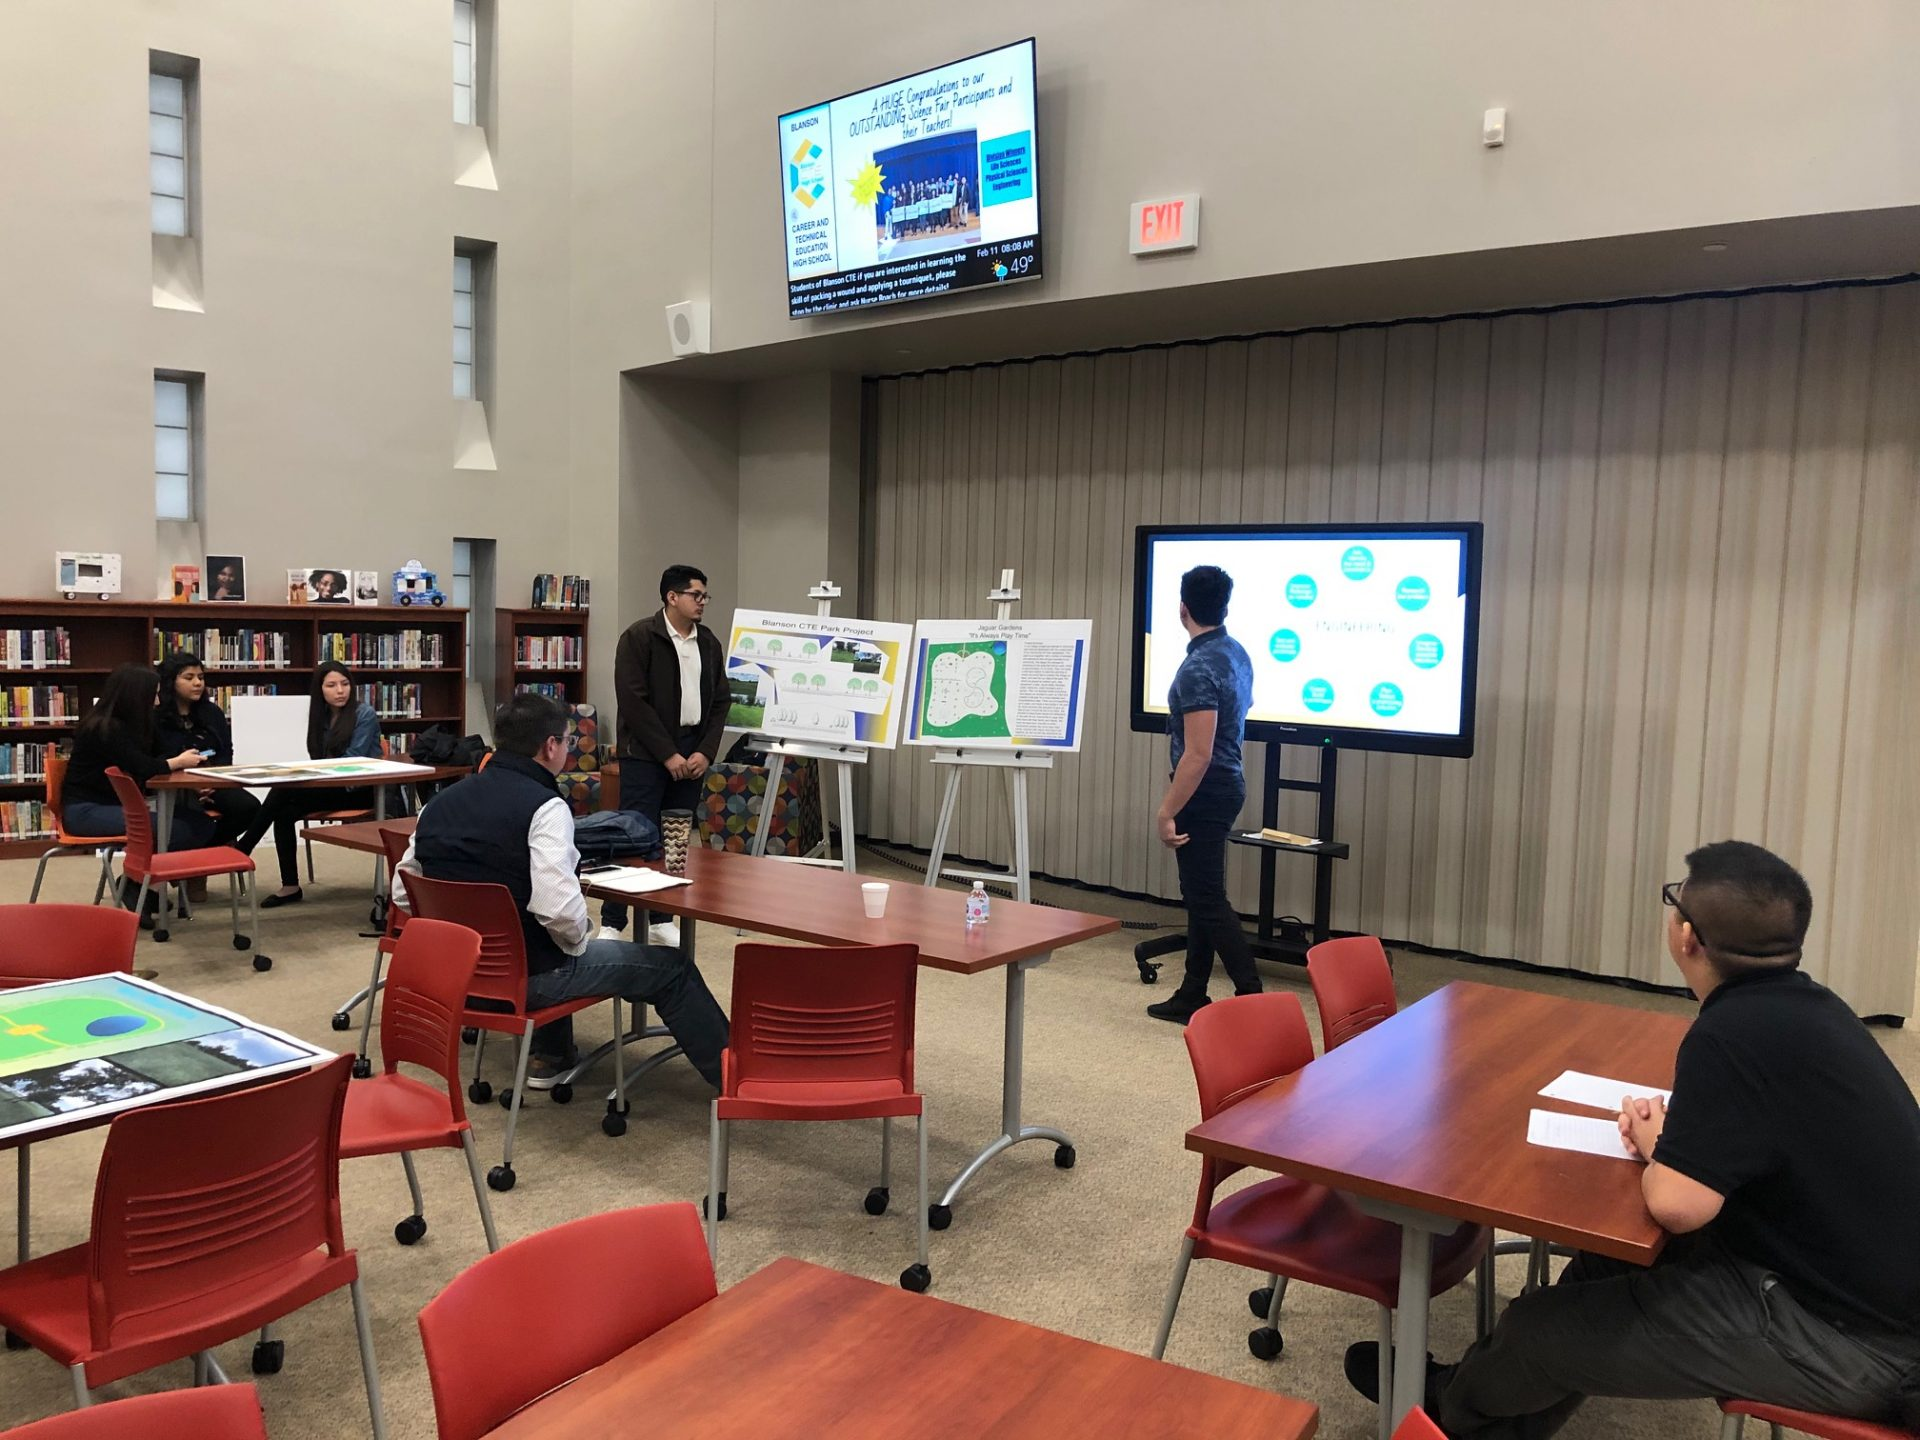 North Houston Association Representatives Meet with Blanson CTE Students for Park Design